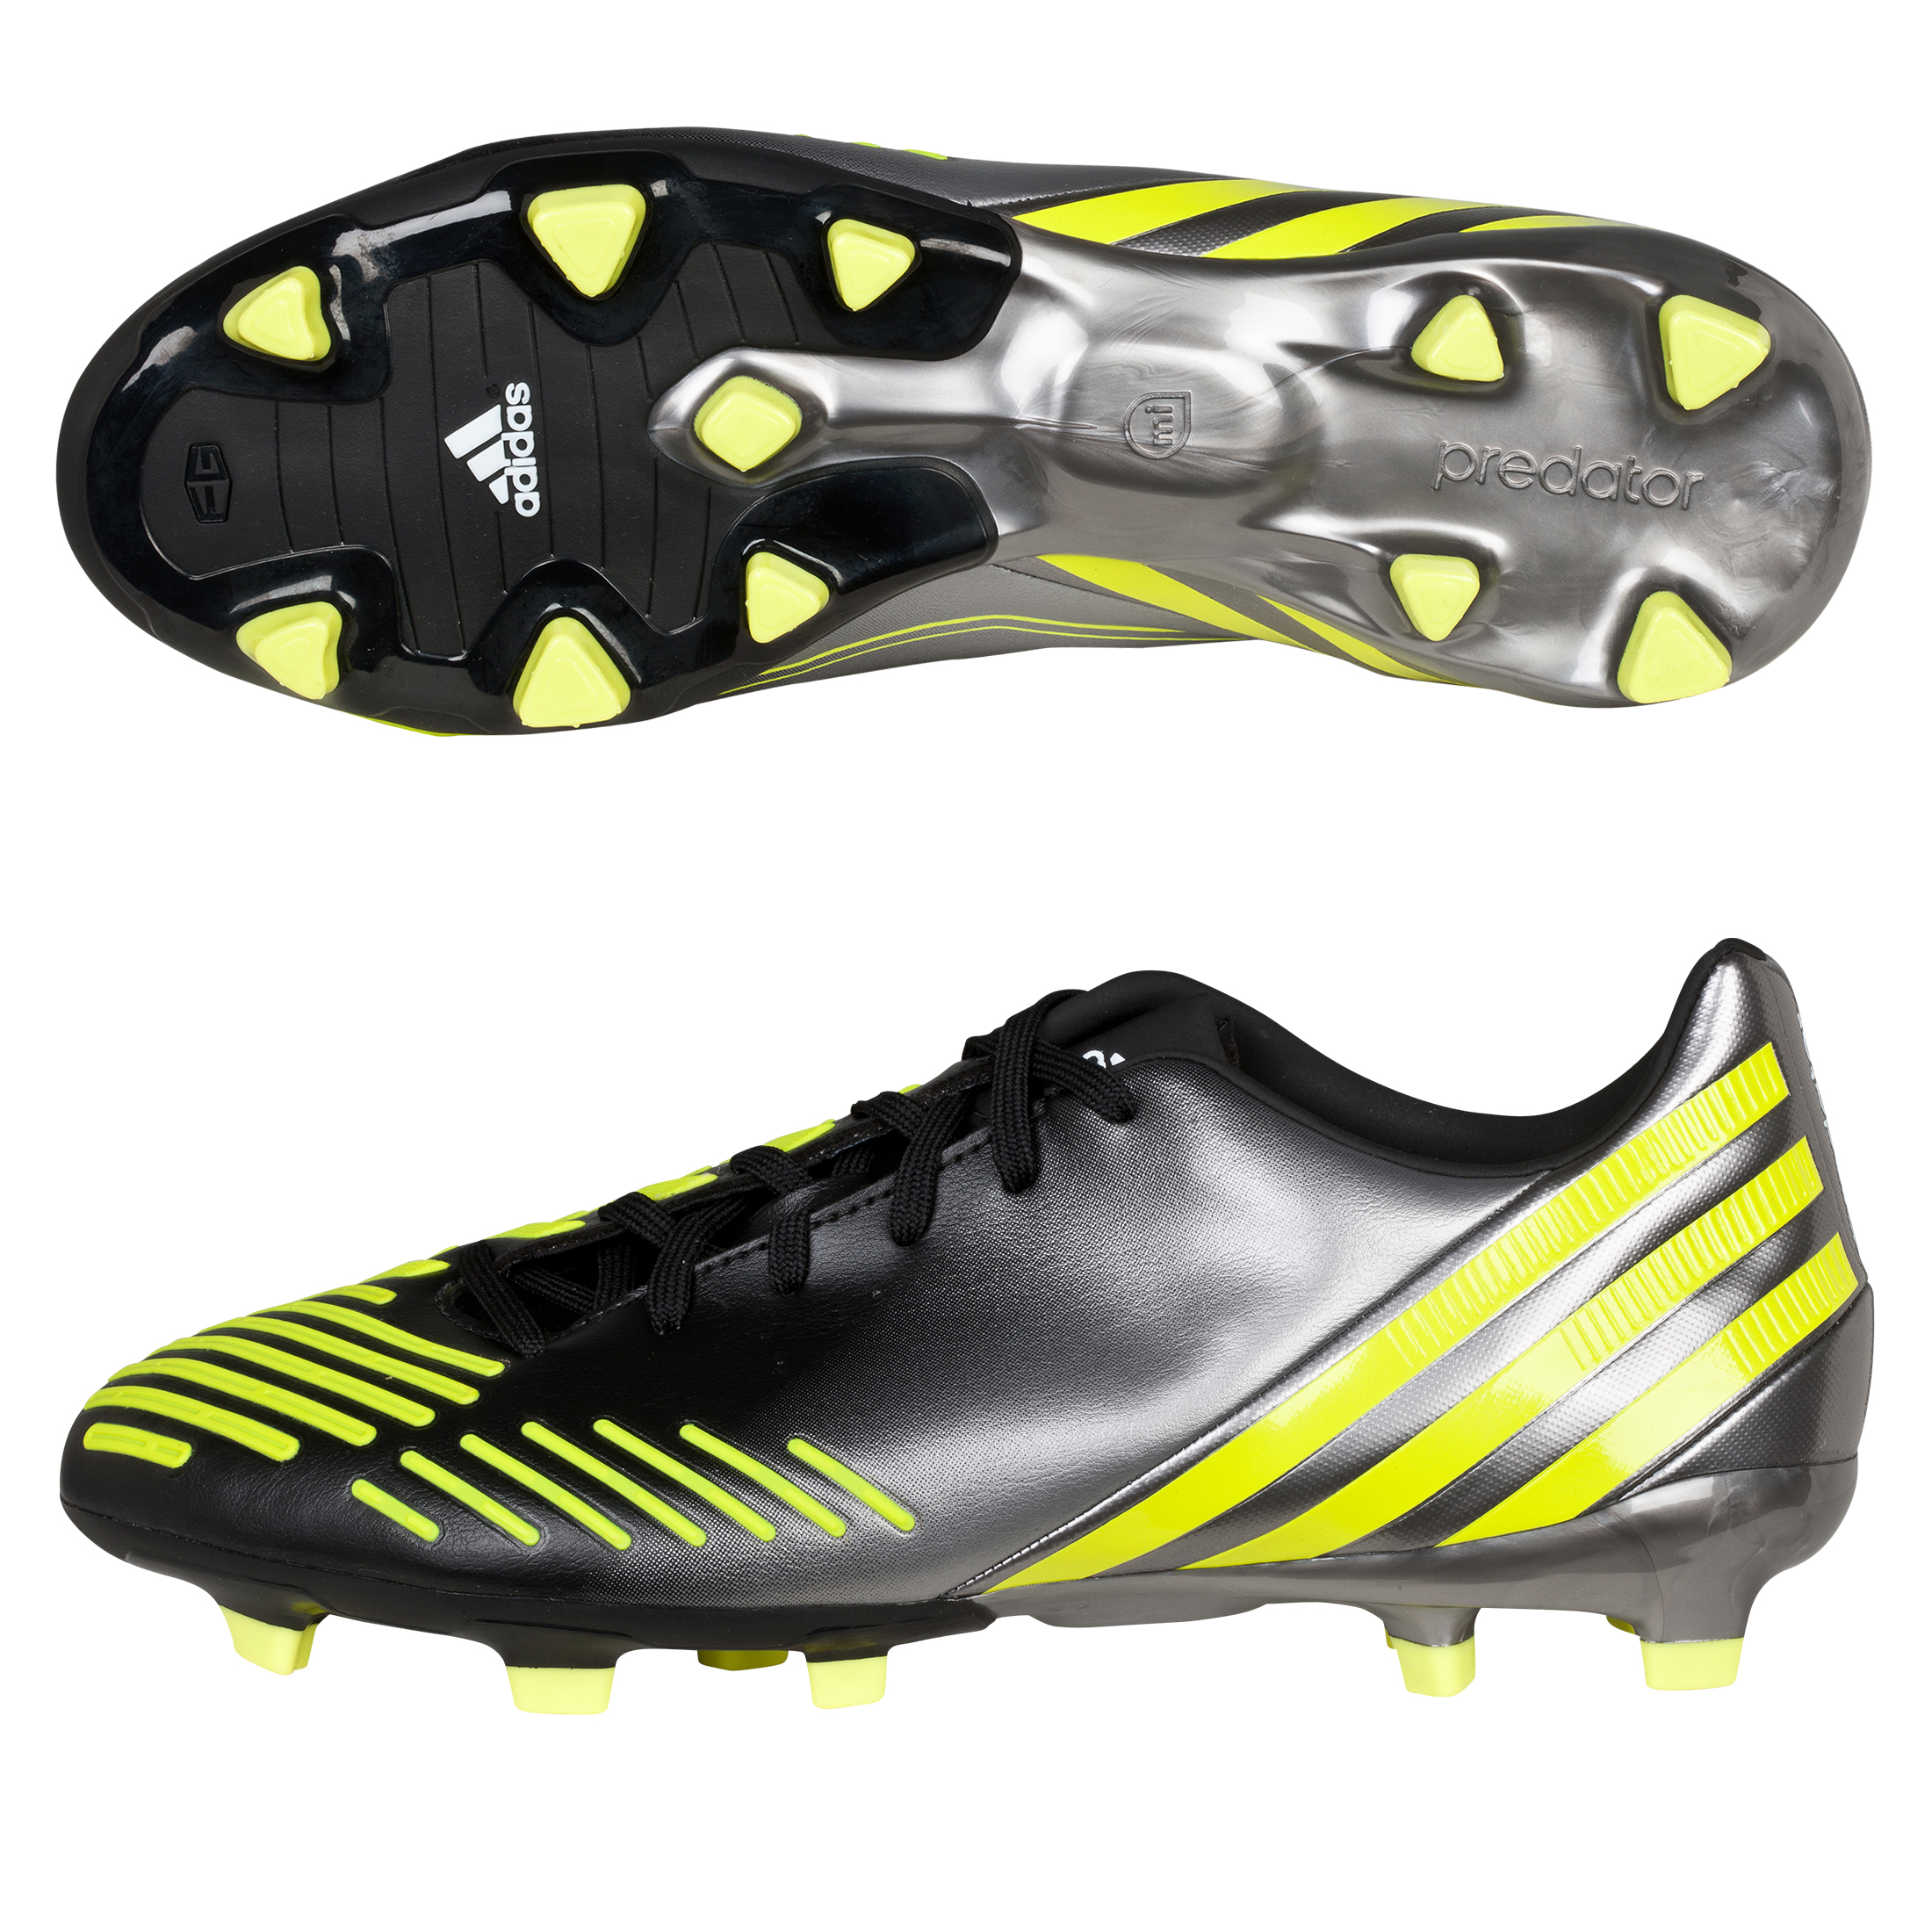 Adidas Predator Absolion LZ TRX Firm Ground Football Boots - Black/Lab Lime/Neo Iron Met